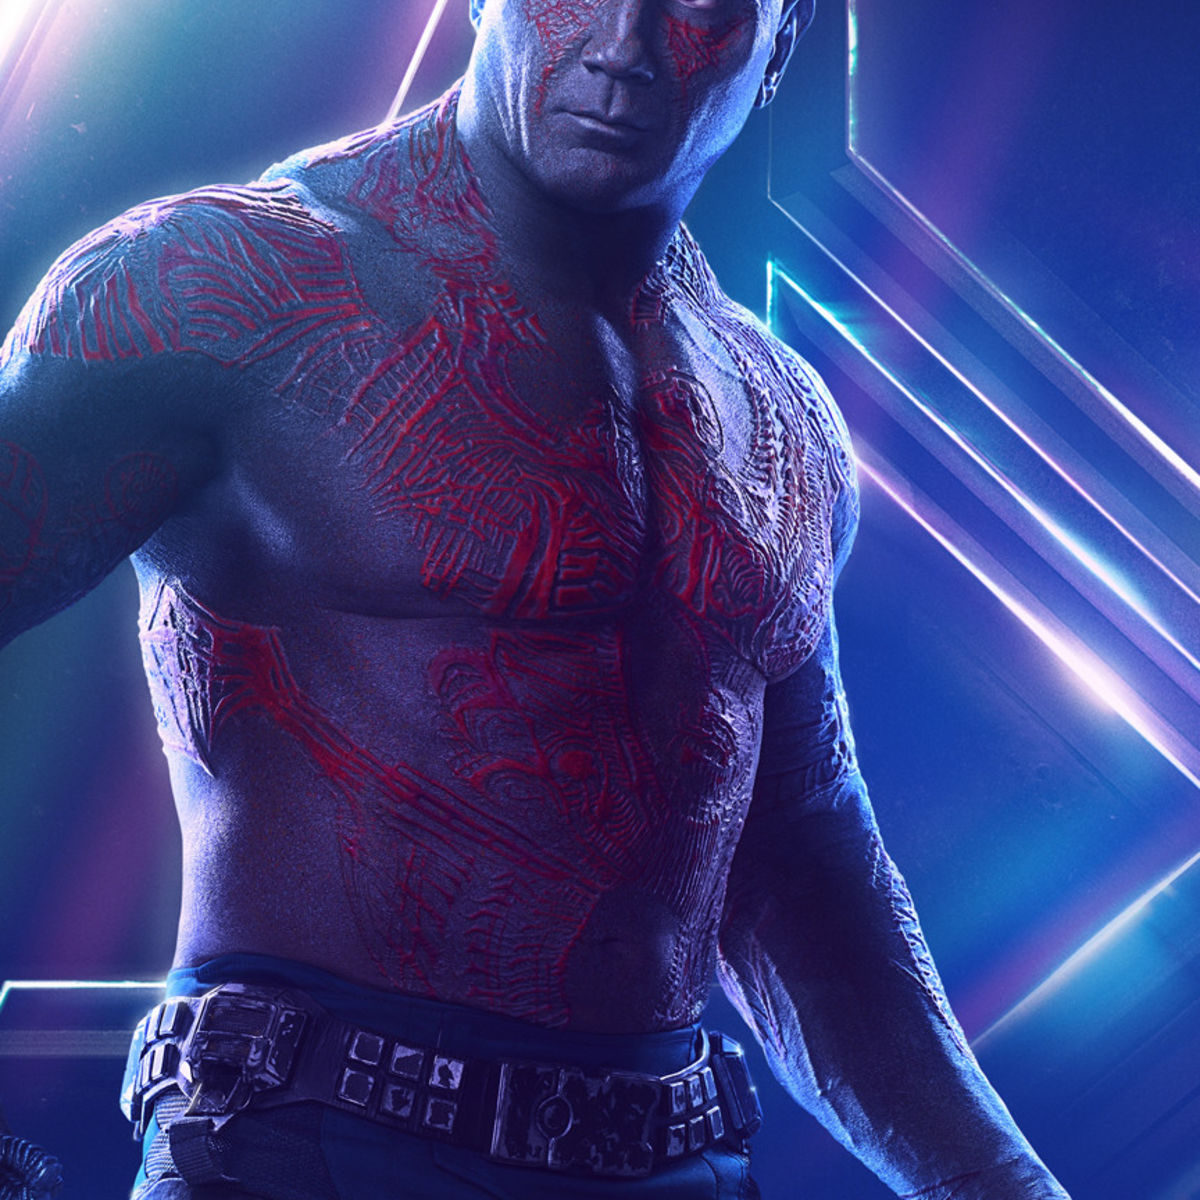 Avengers: Infinity Wars character poster - Dave Bautista as Drax